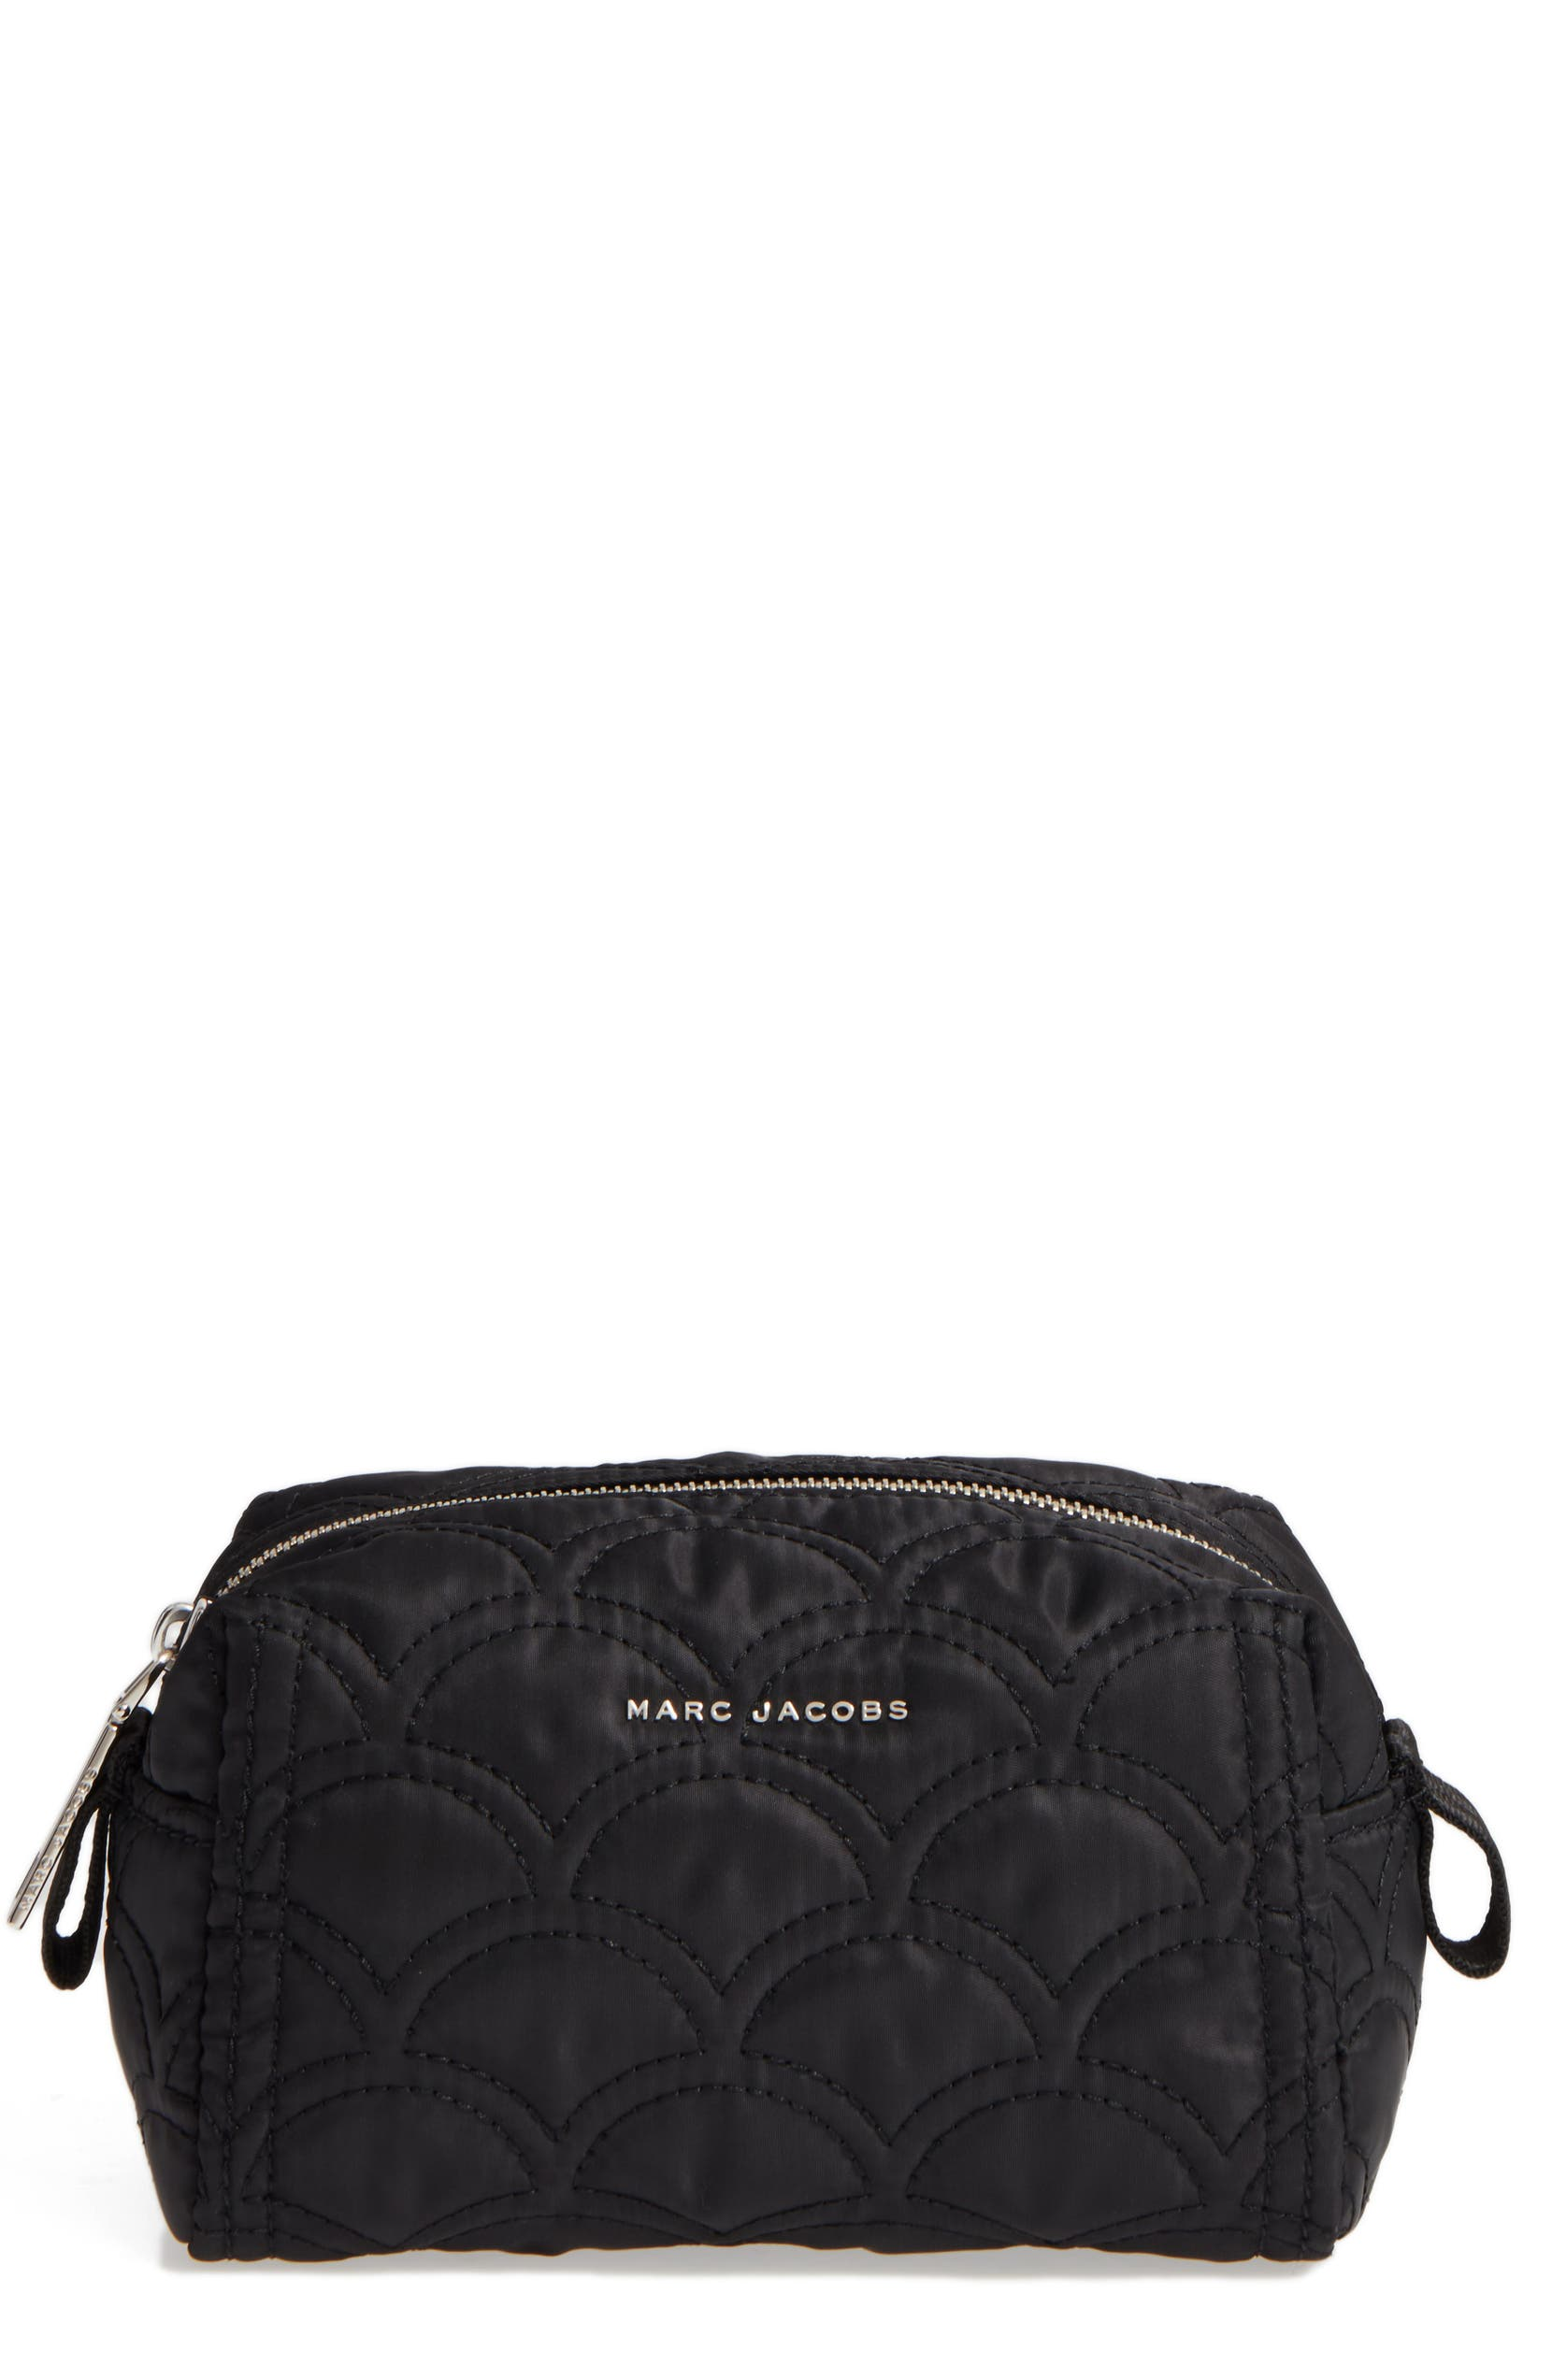 7471decfa43e Lyst Marc By Jacobs Large Black Crosby Quilted Cosmetic Bag. Marc Jacobs  Large Quilted Cosmetics Bag Nordstrom